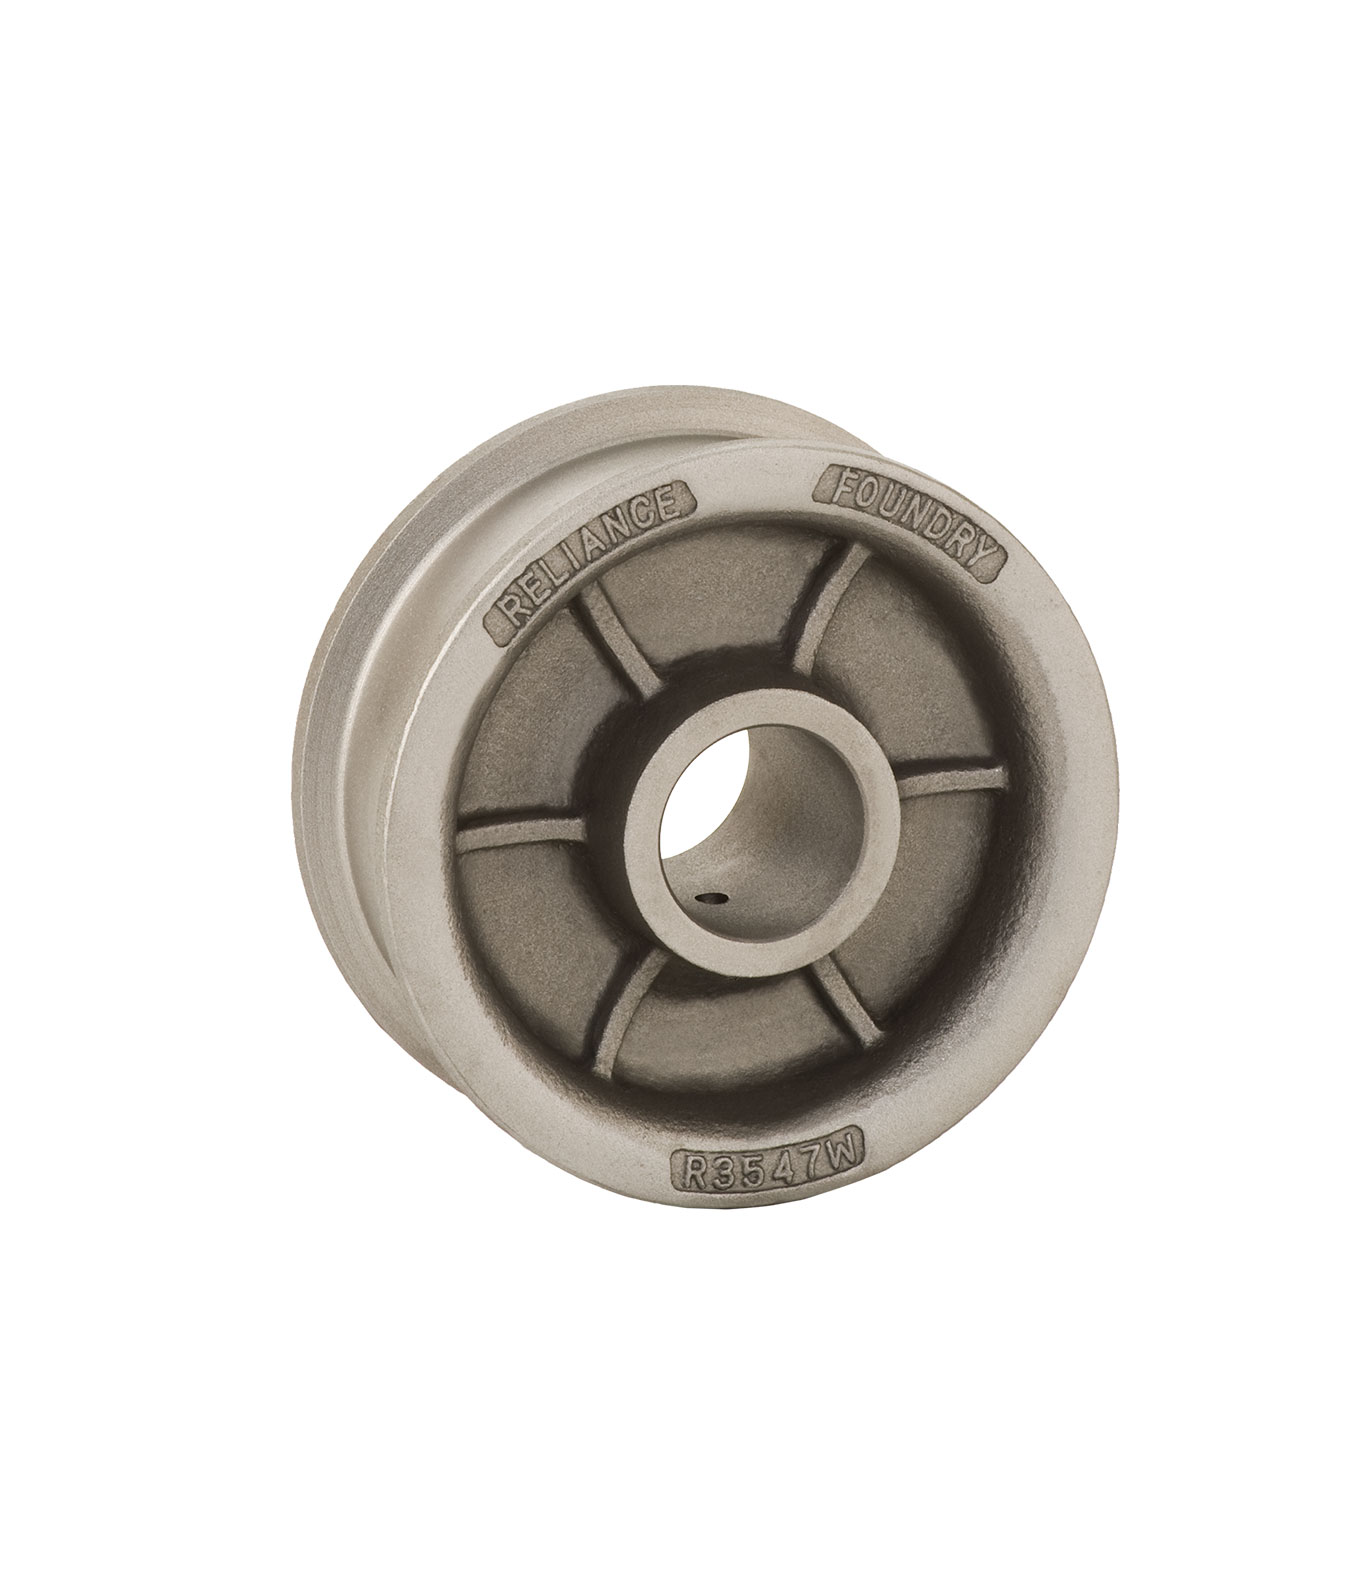 R-3547-W Double Flanged Wheel